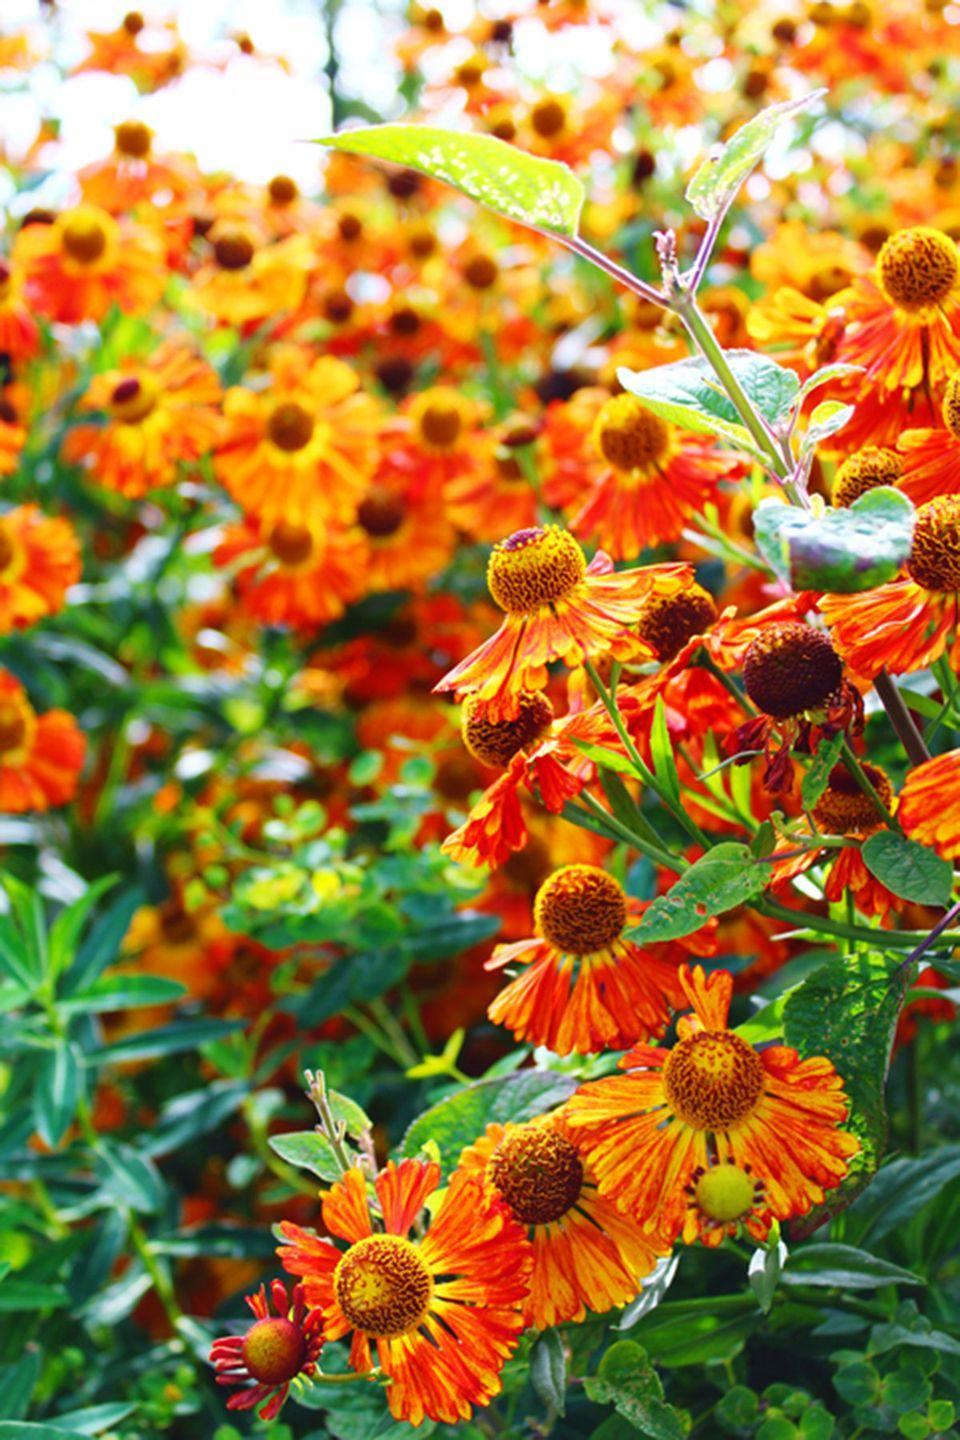 <p>If you plant helenium in for your fall garden, expect to see butterflies! They love to hang around these vibrant flowers.</p><p><strong>Zones: 3-8</strong></p>